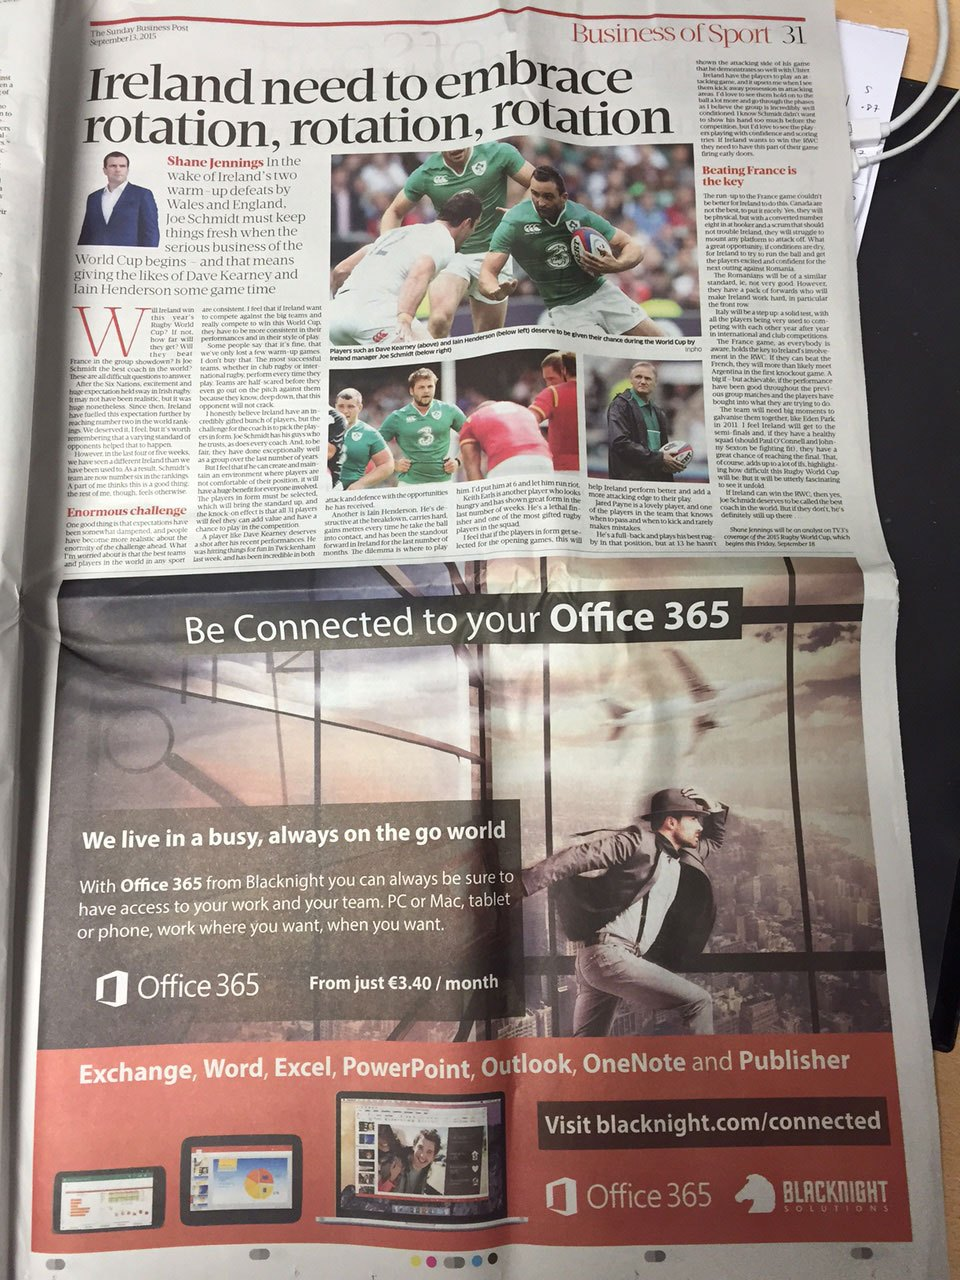 Office 365 Advert in the Sunday Business Post